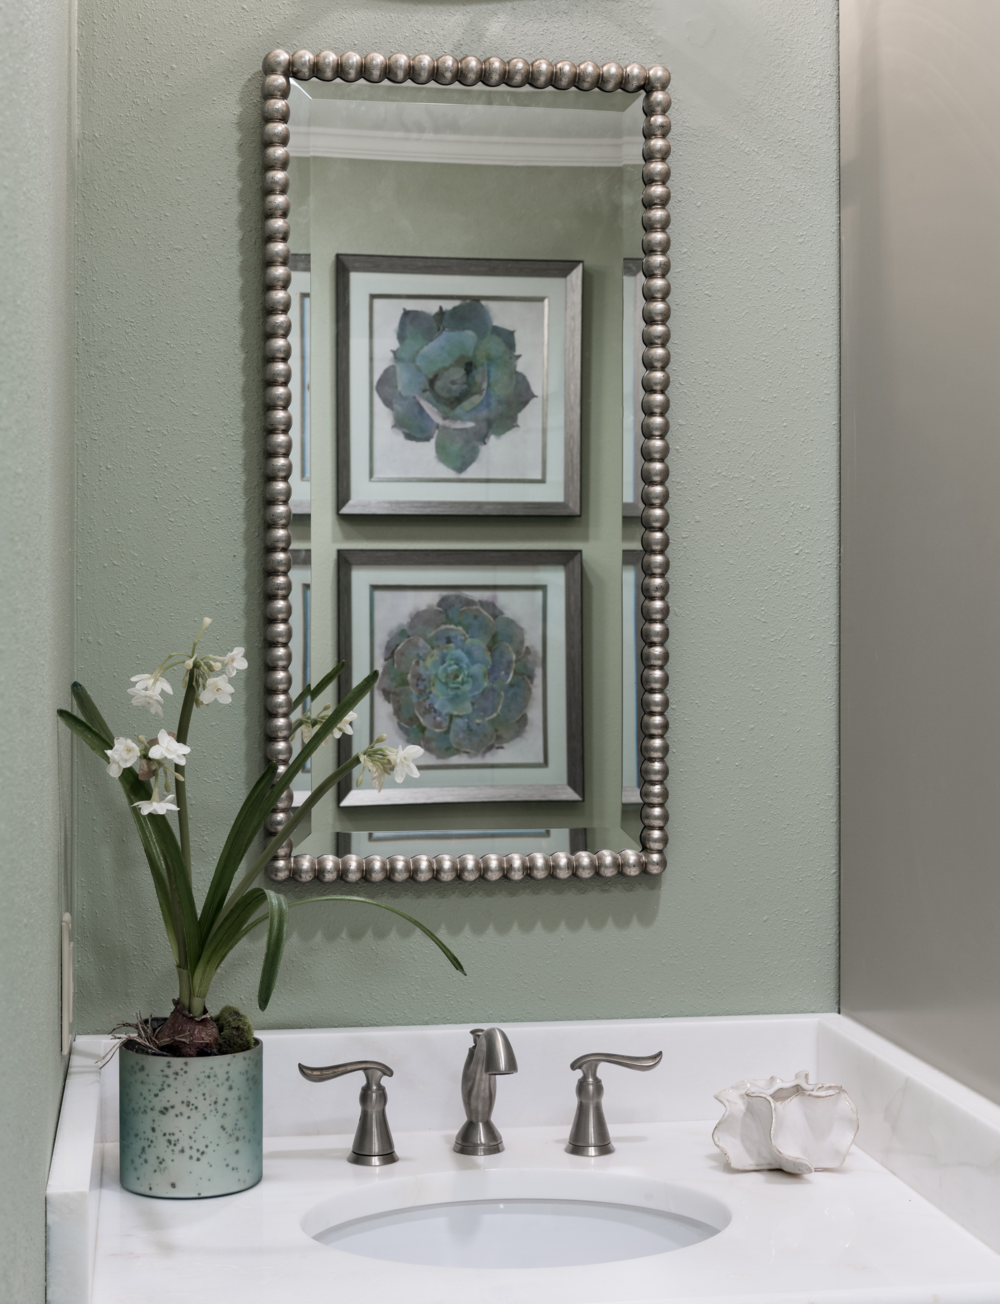 KHB Interiors master bathroom update old metairie interior designer metairie garden district .png